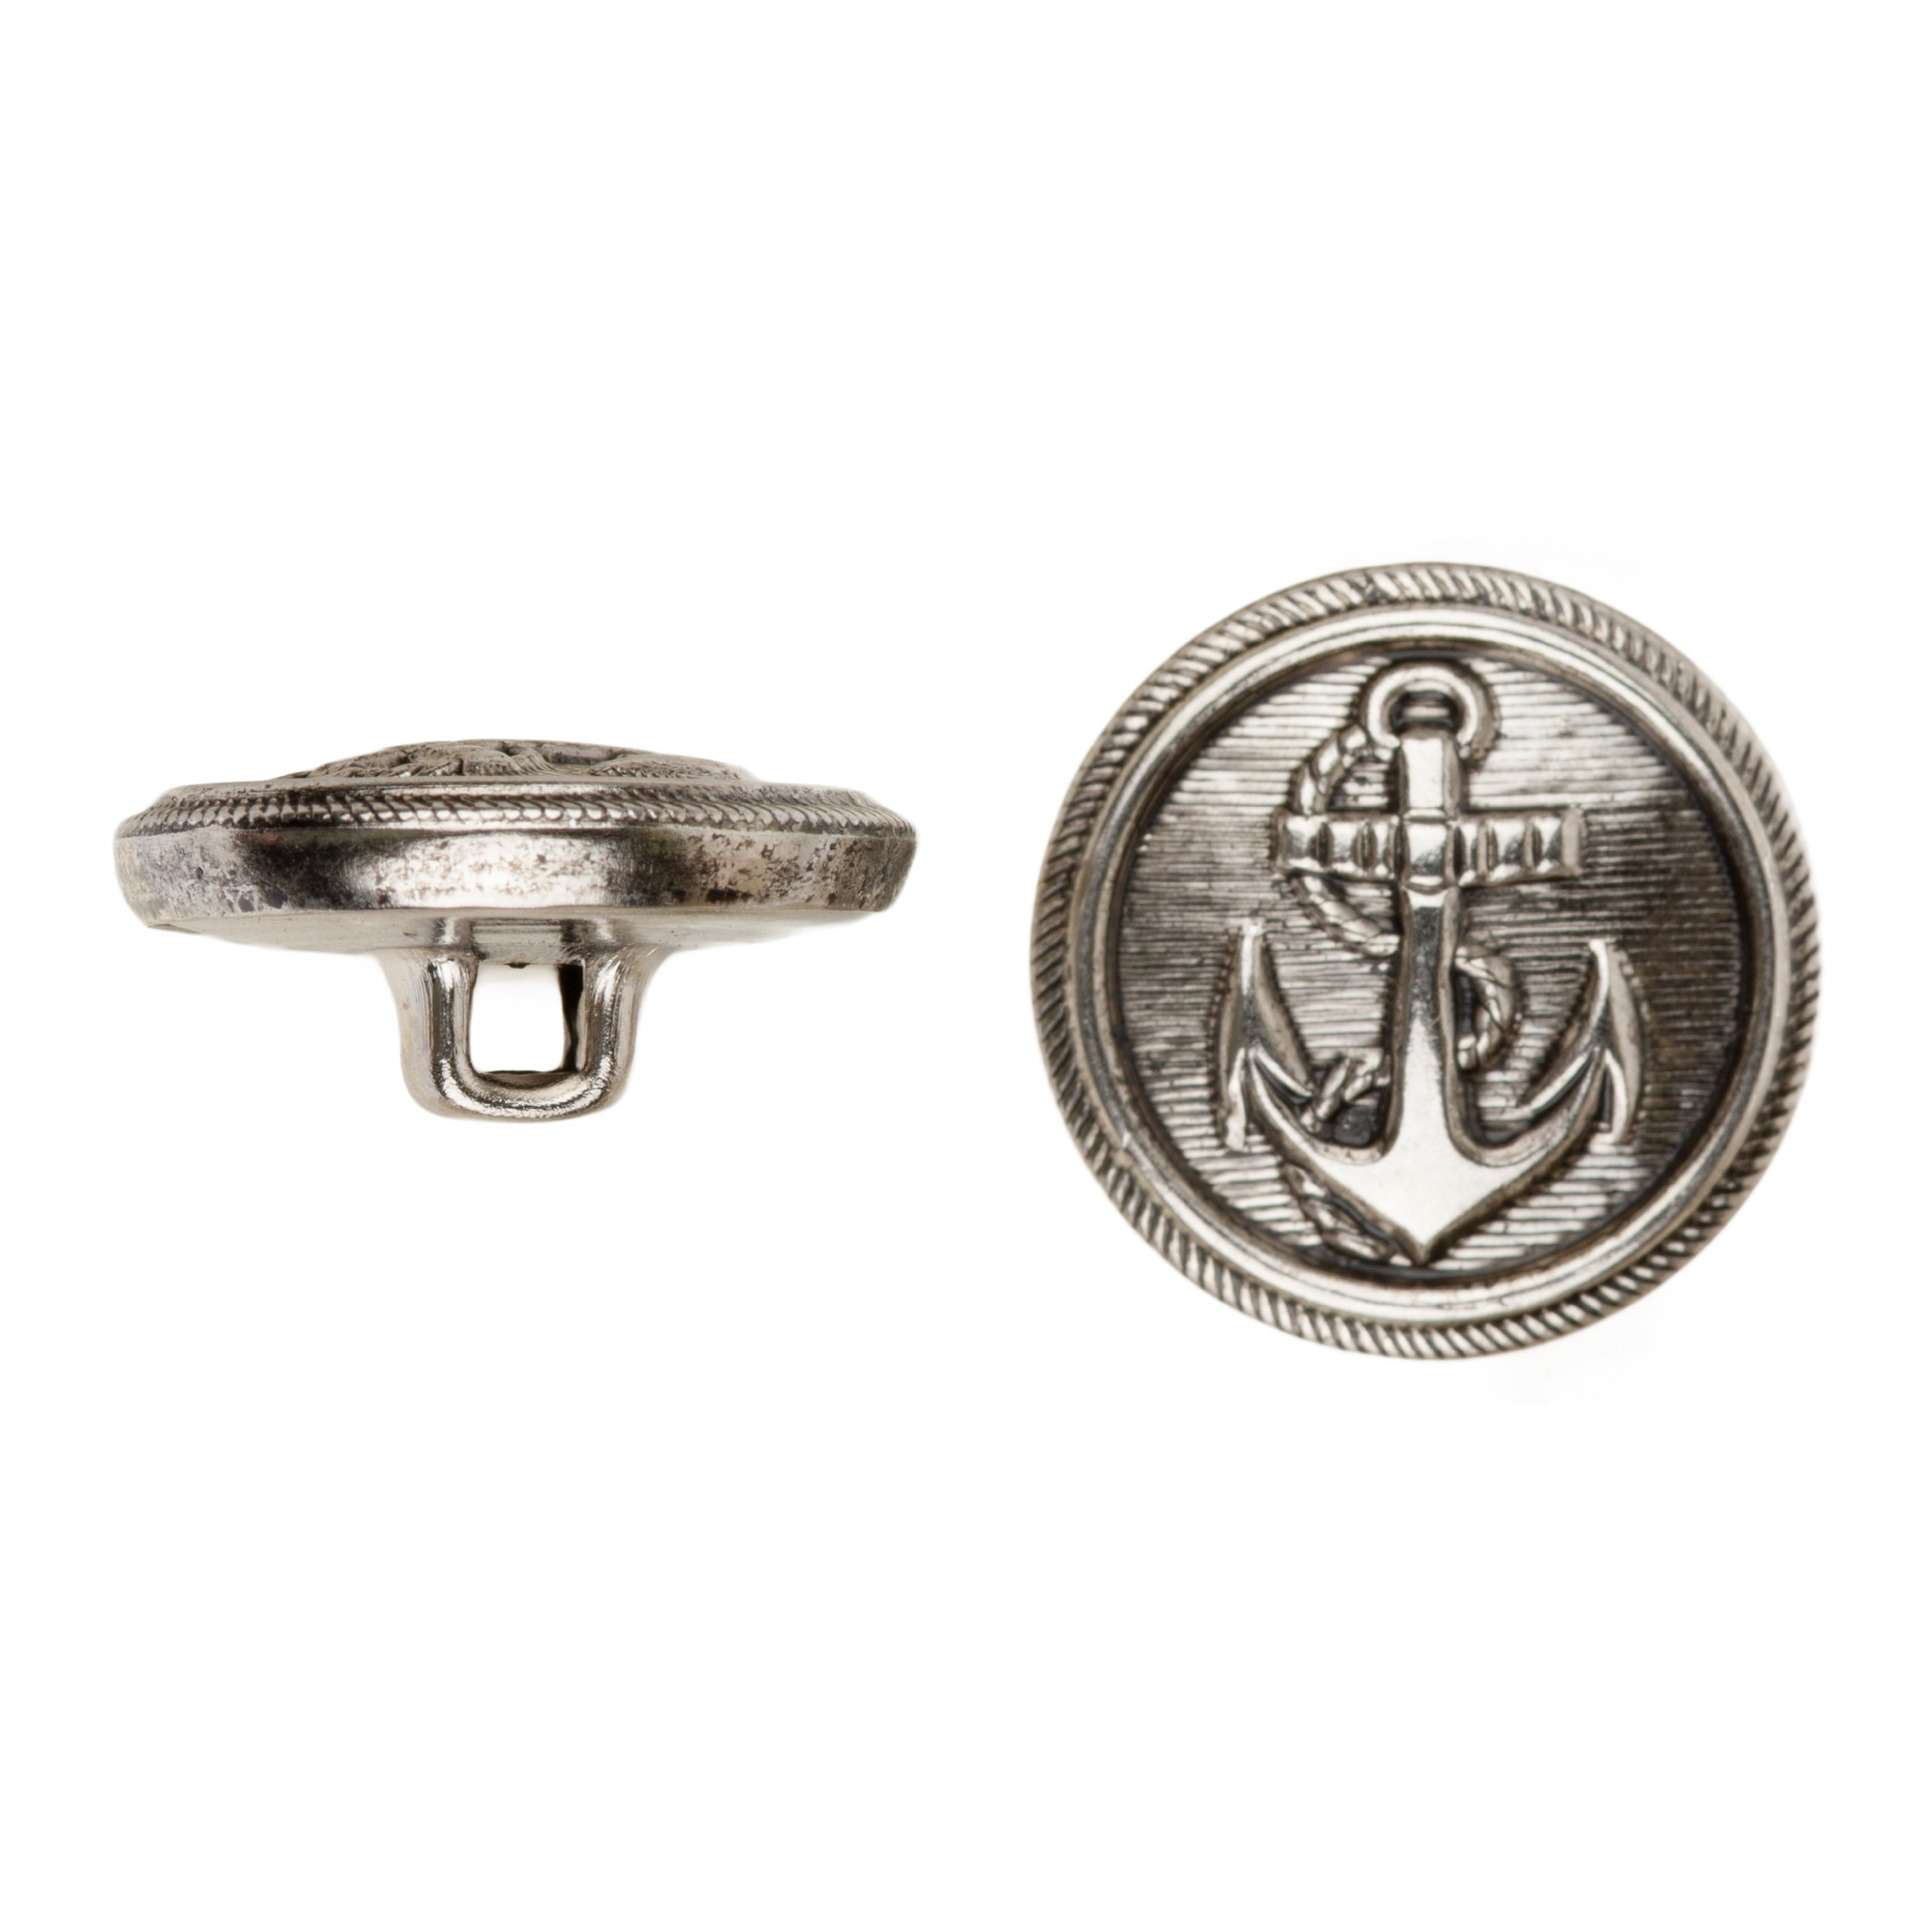 C&C Metal Products 5018 Anchor Metal Button, Size 36 Ligne, Antique Nickel, 36-Pack